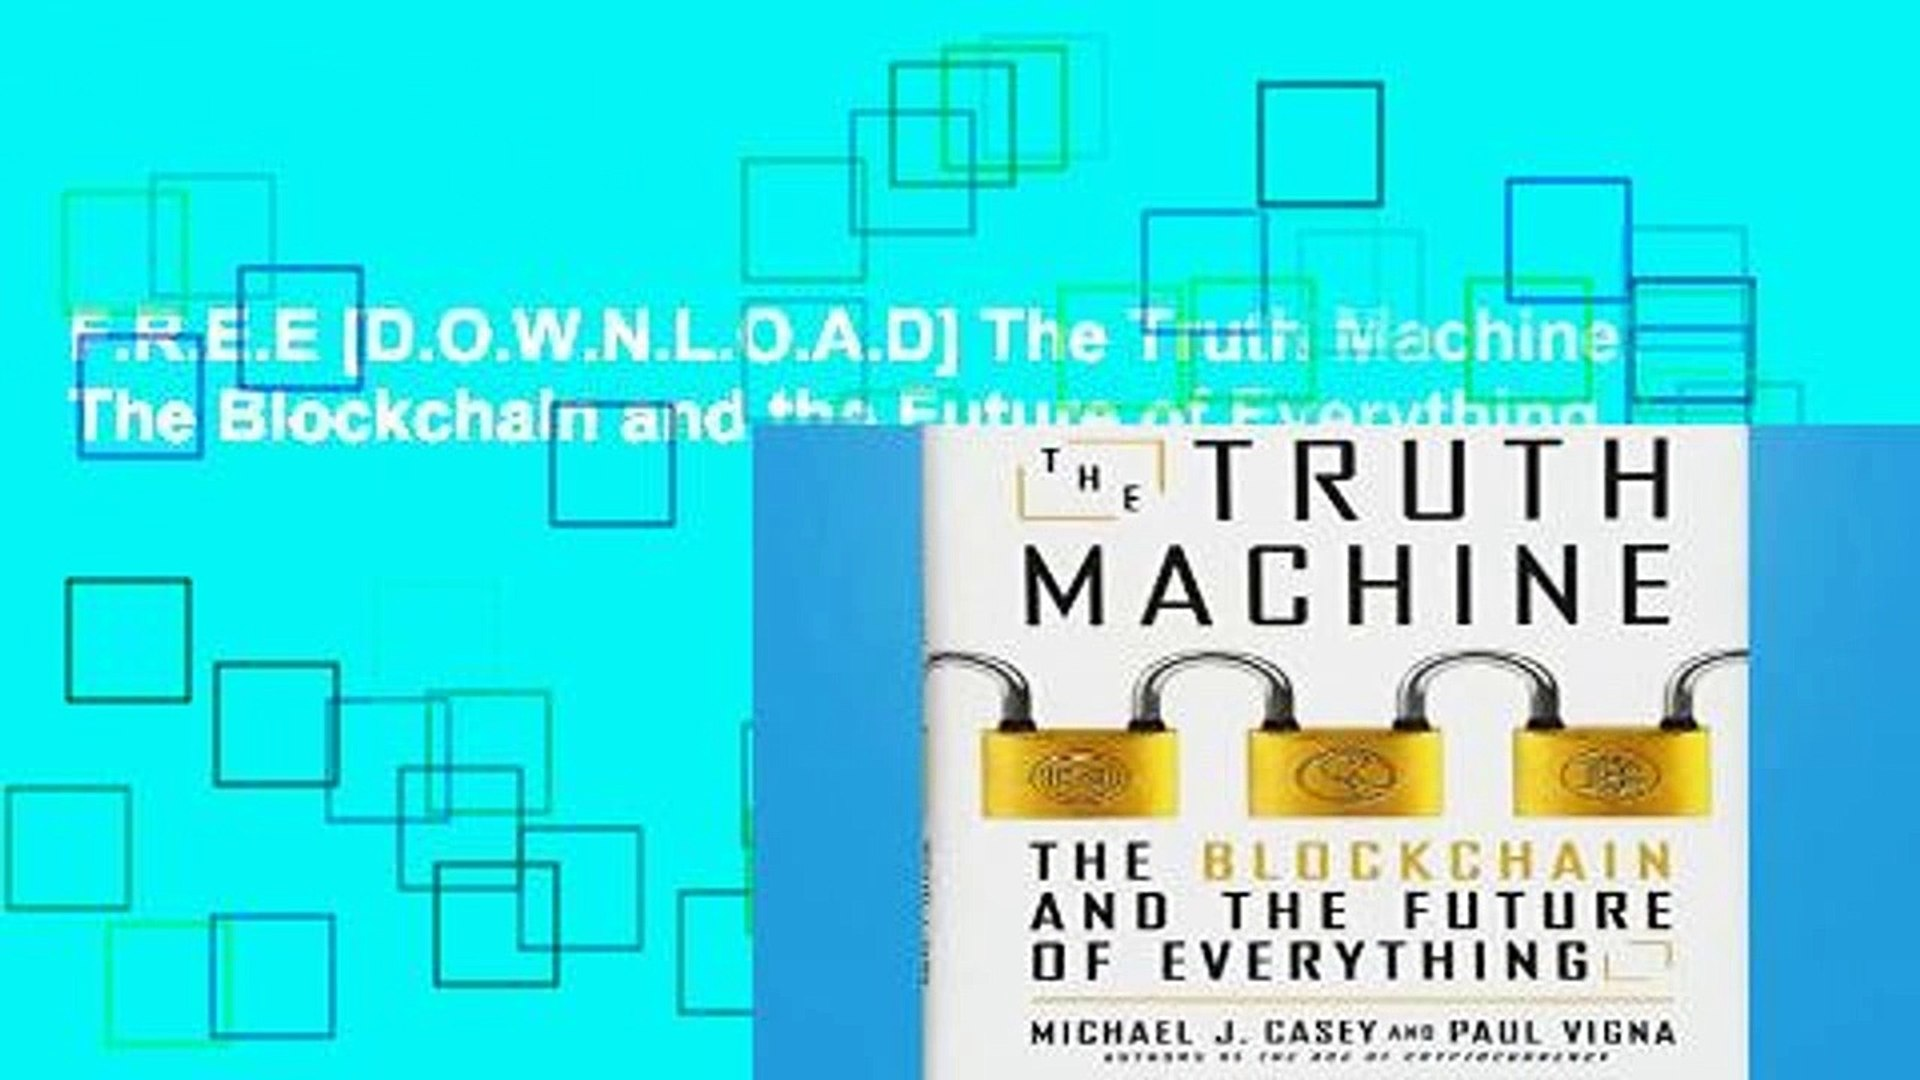 F.R.E.E [D.O.W.N.L.O.A.D] The Truth Machine: The Blockchain and the Future of Everything